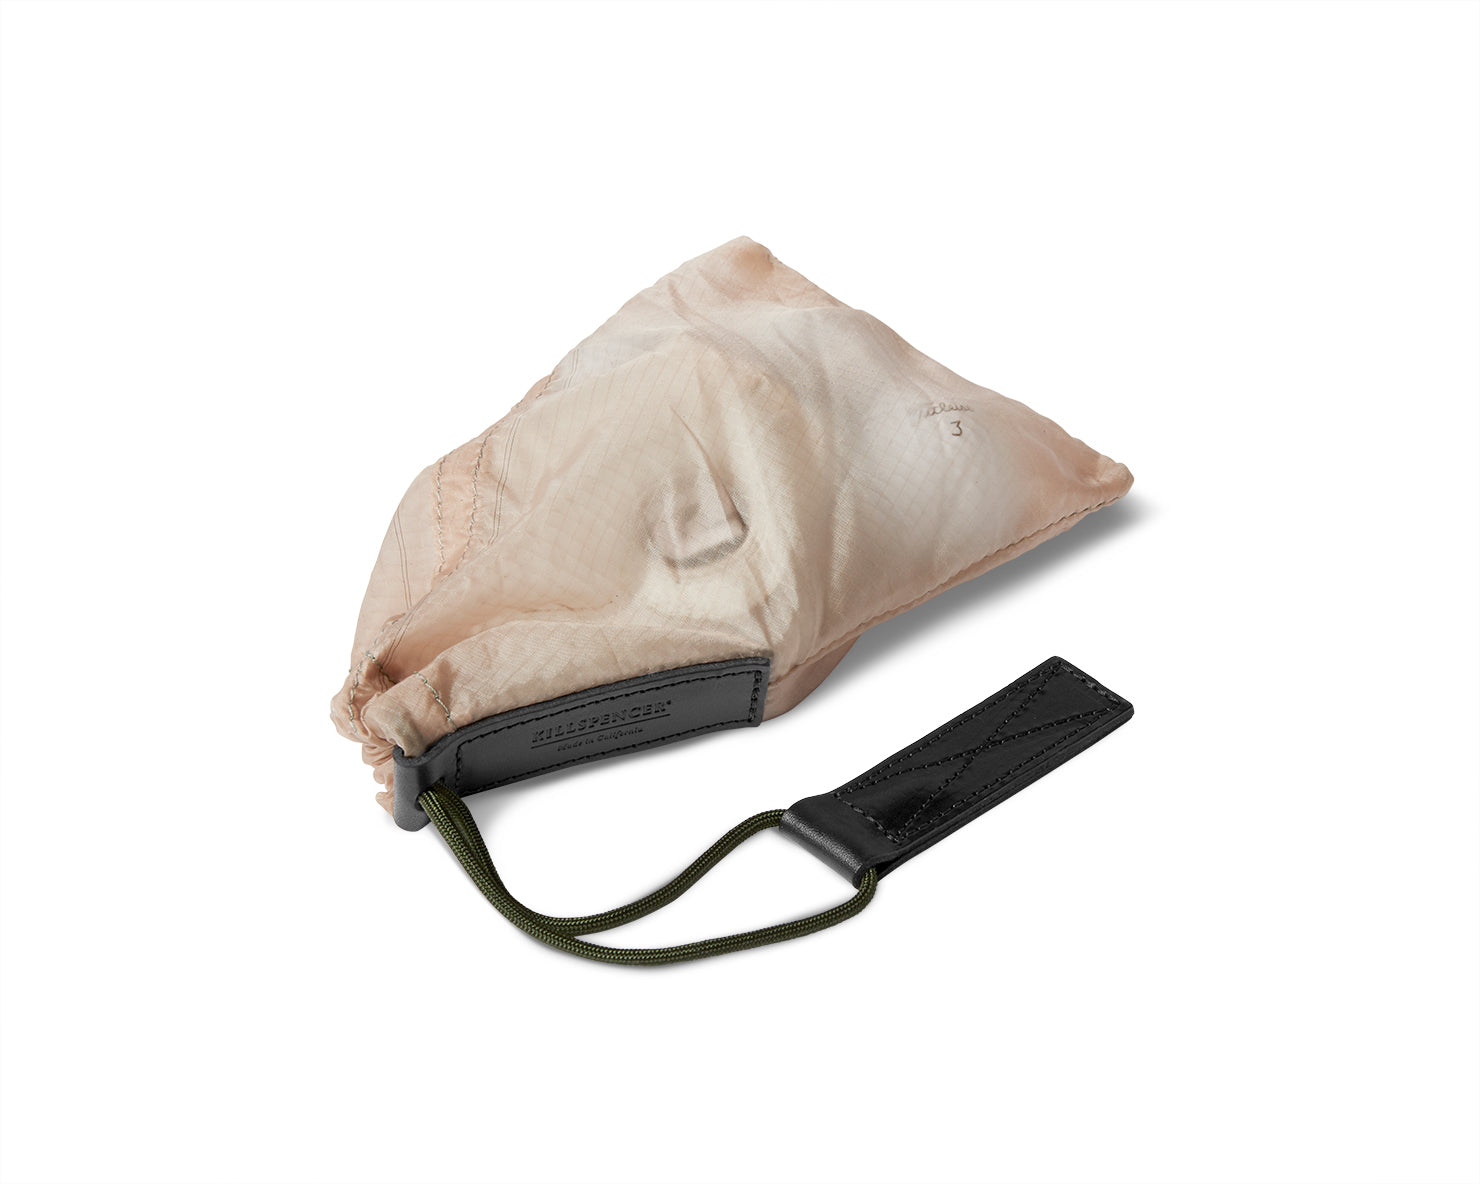 PARACHUTE BAG 2.0 - Small Accessory Bag | KILLSPENCER® - Tan Parachute